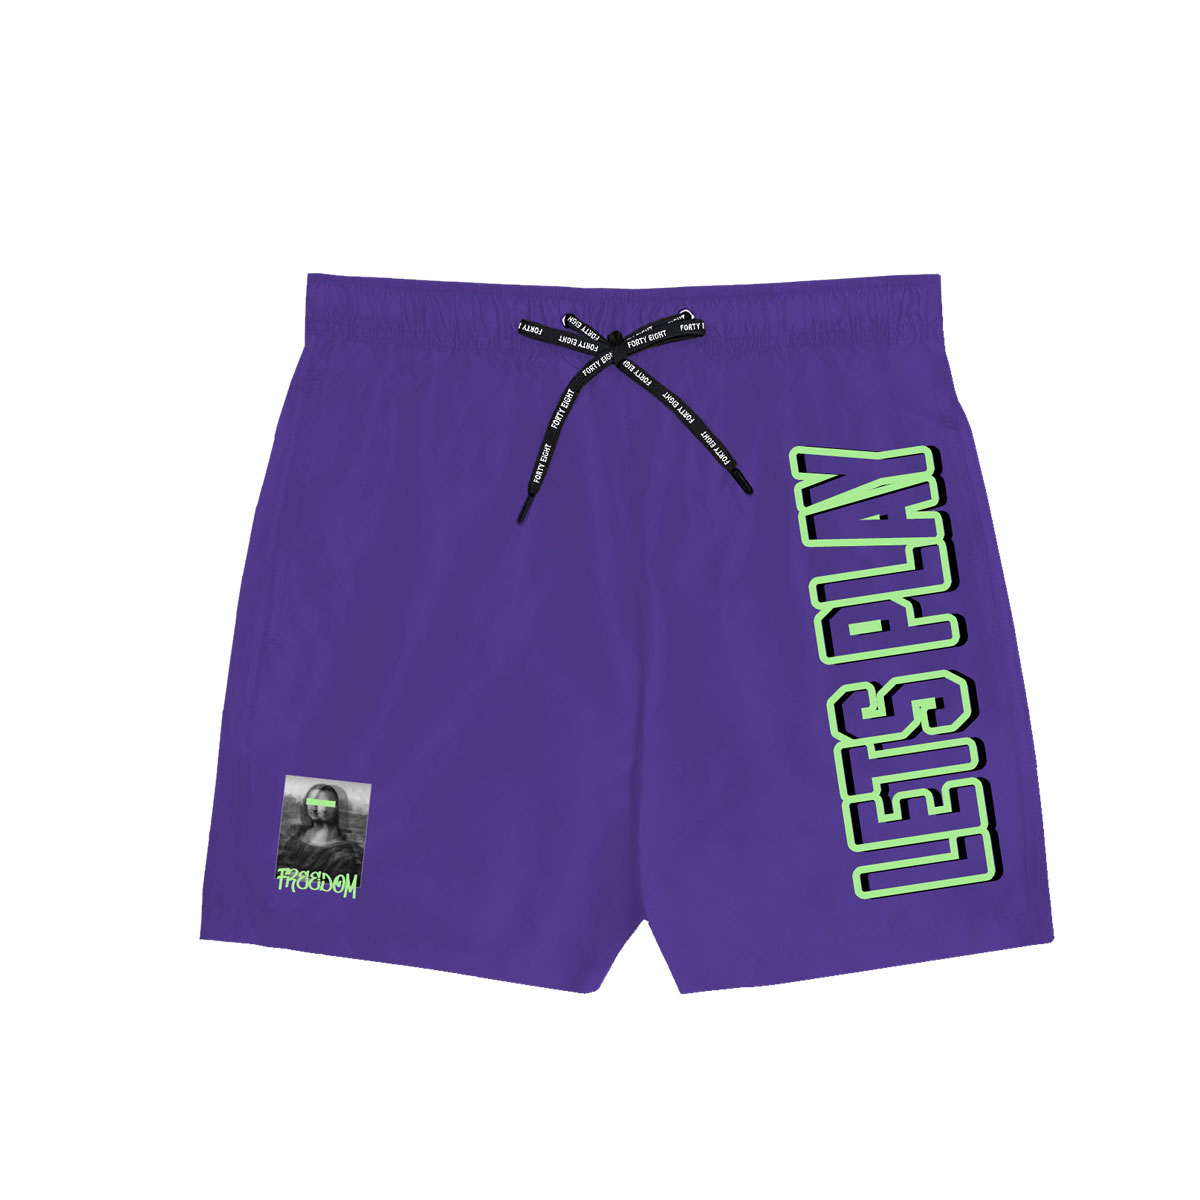 Stay King Swimming Short - Purple